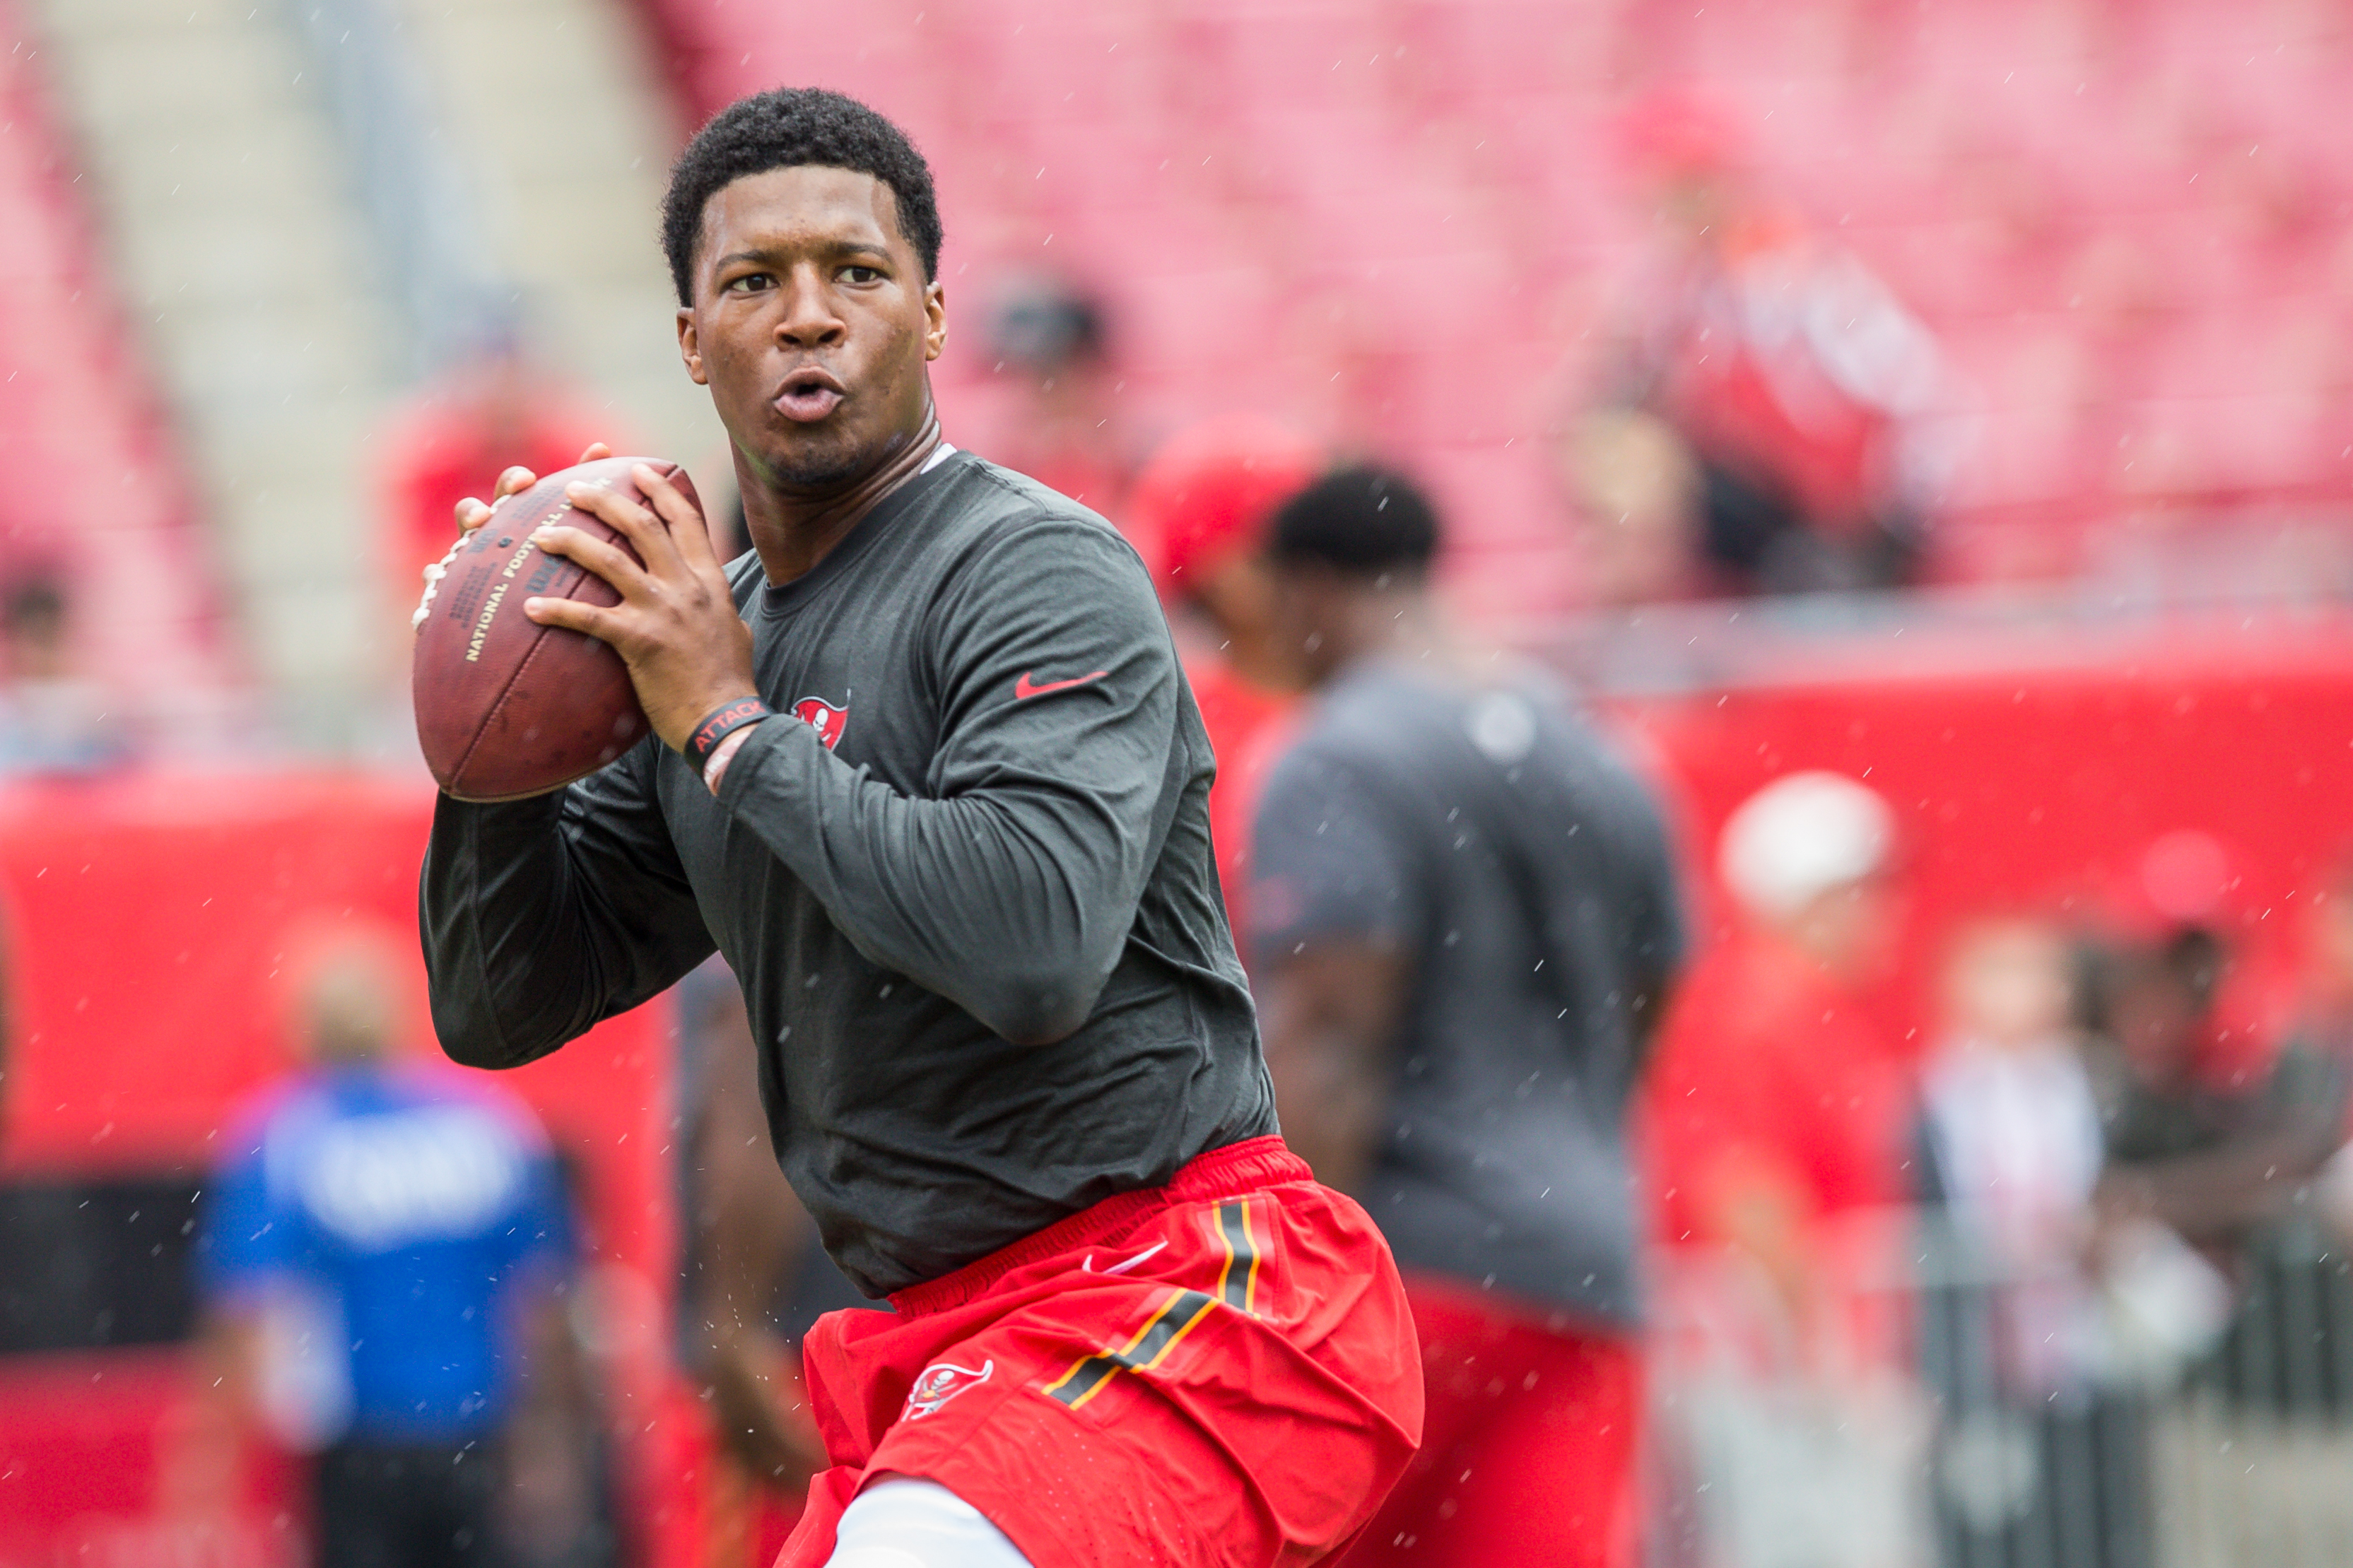 Jameis Winston continues to lead the Bucs./TRAVIS PENDERGRASS